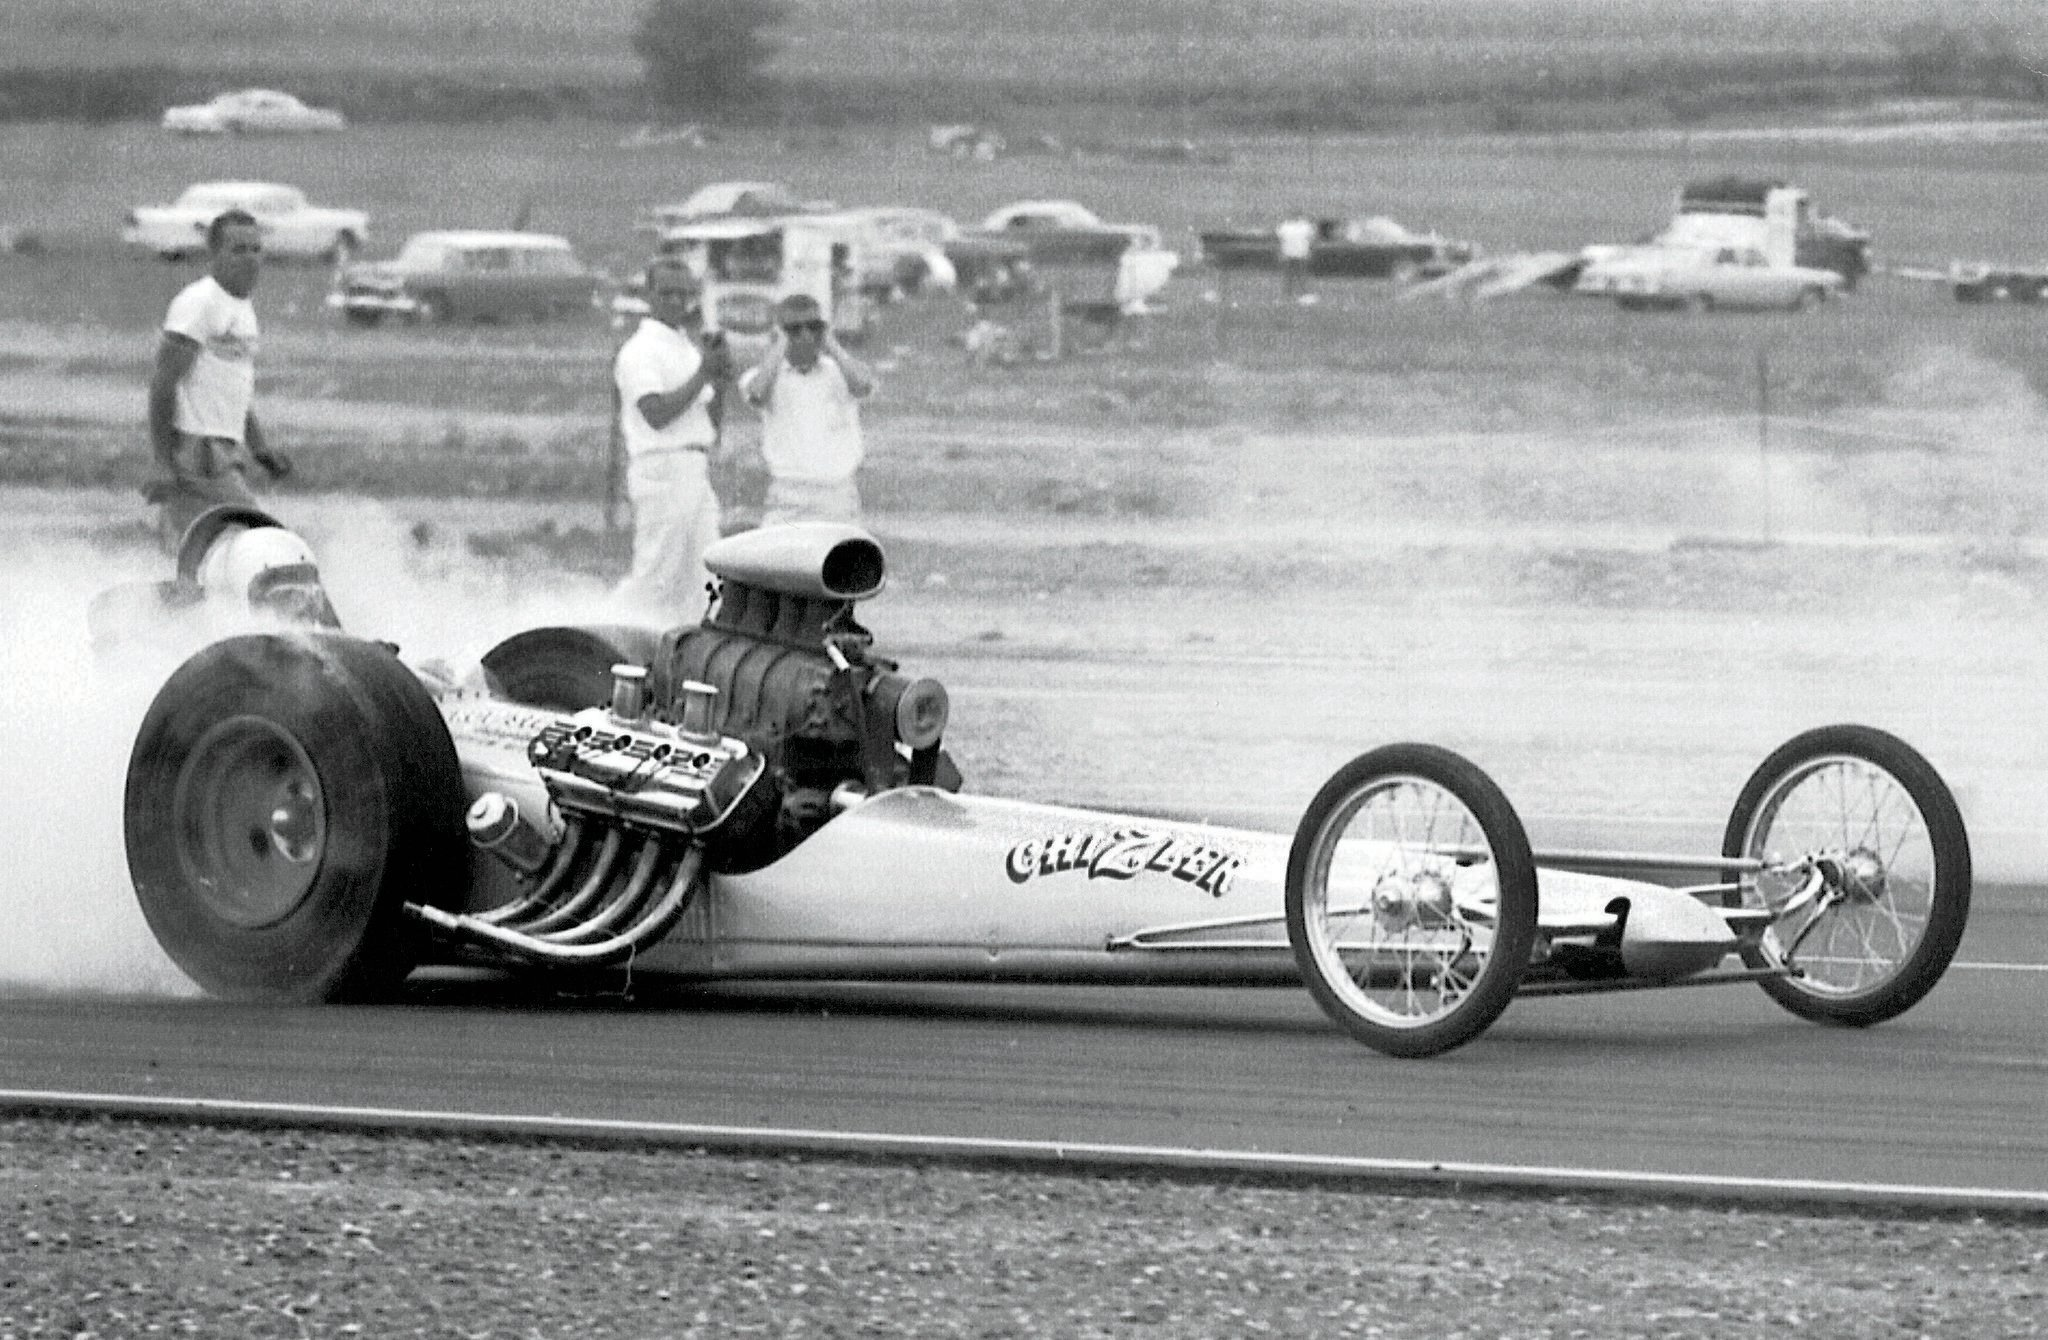 Greek contracted California chassis guru Rod Stuckey to build a car for him for the 1963 season. A sleek beauty, it took Karamesines to his first 7-second clocking.